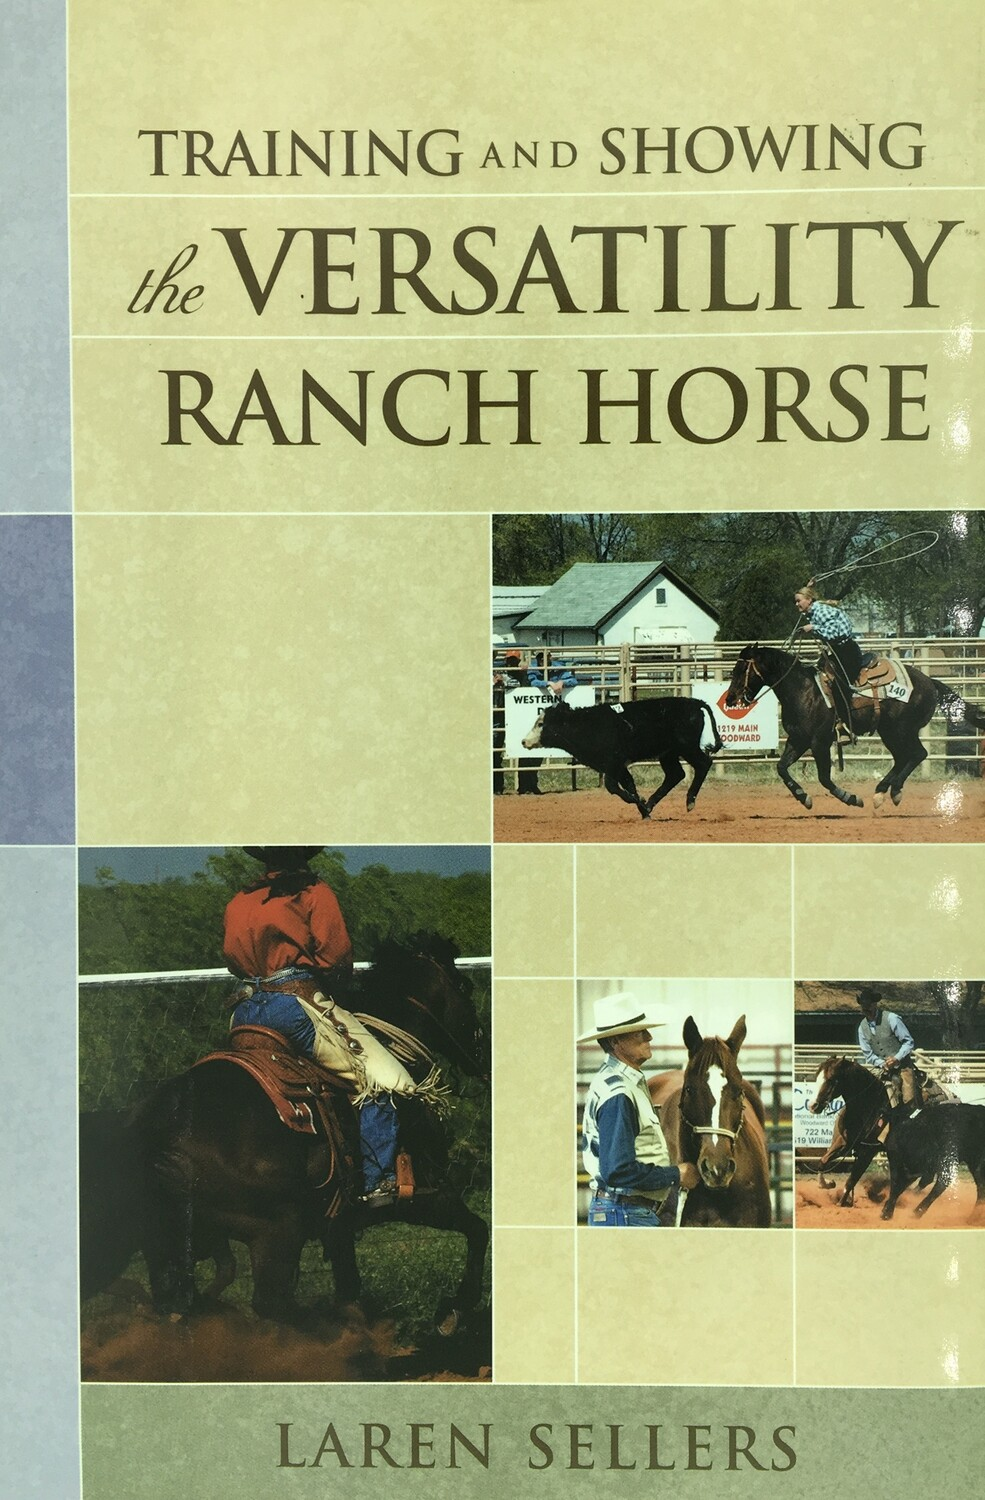 Training & Showing the Versatility Ranch Horse